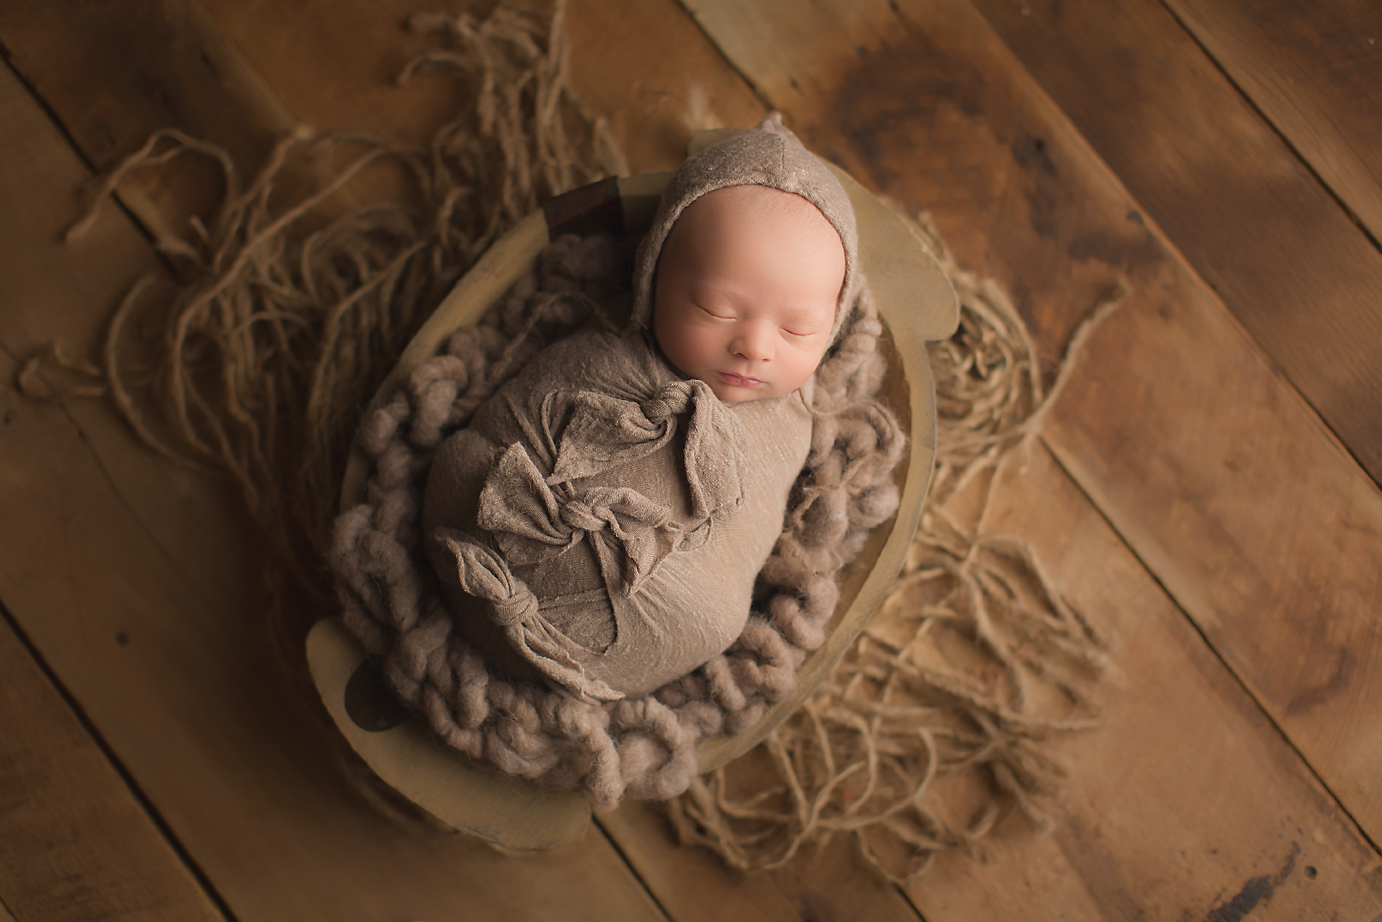 orange-county-newborn-photography-studio-baby-boy-rustic-natural-wood-bowl.jpg